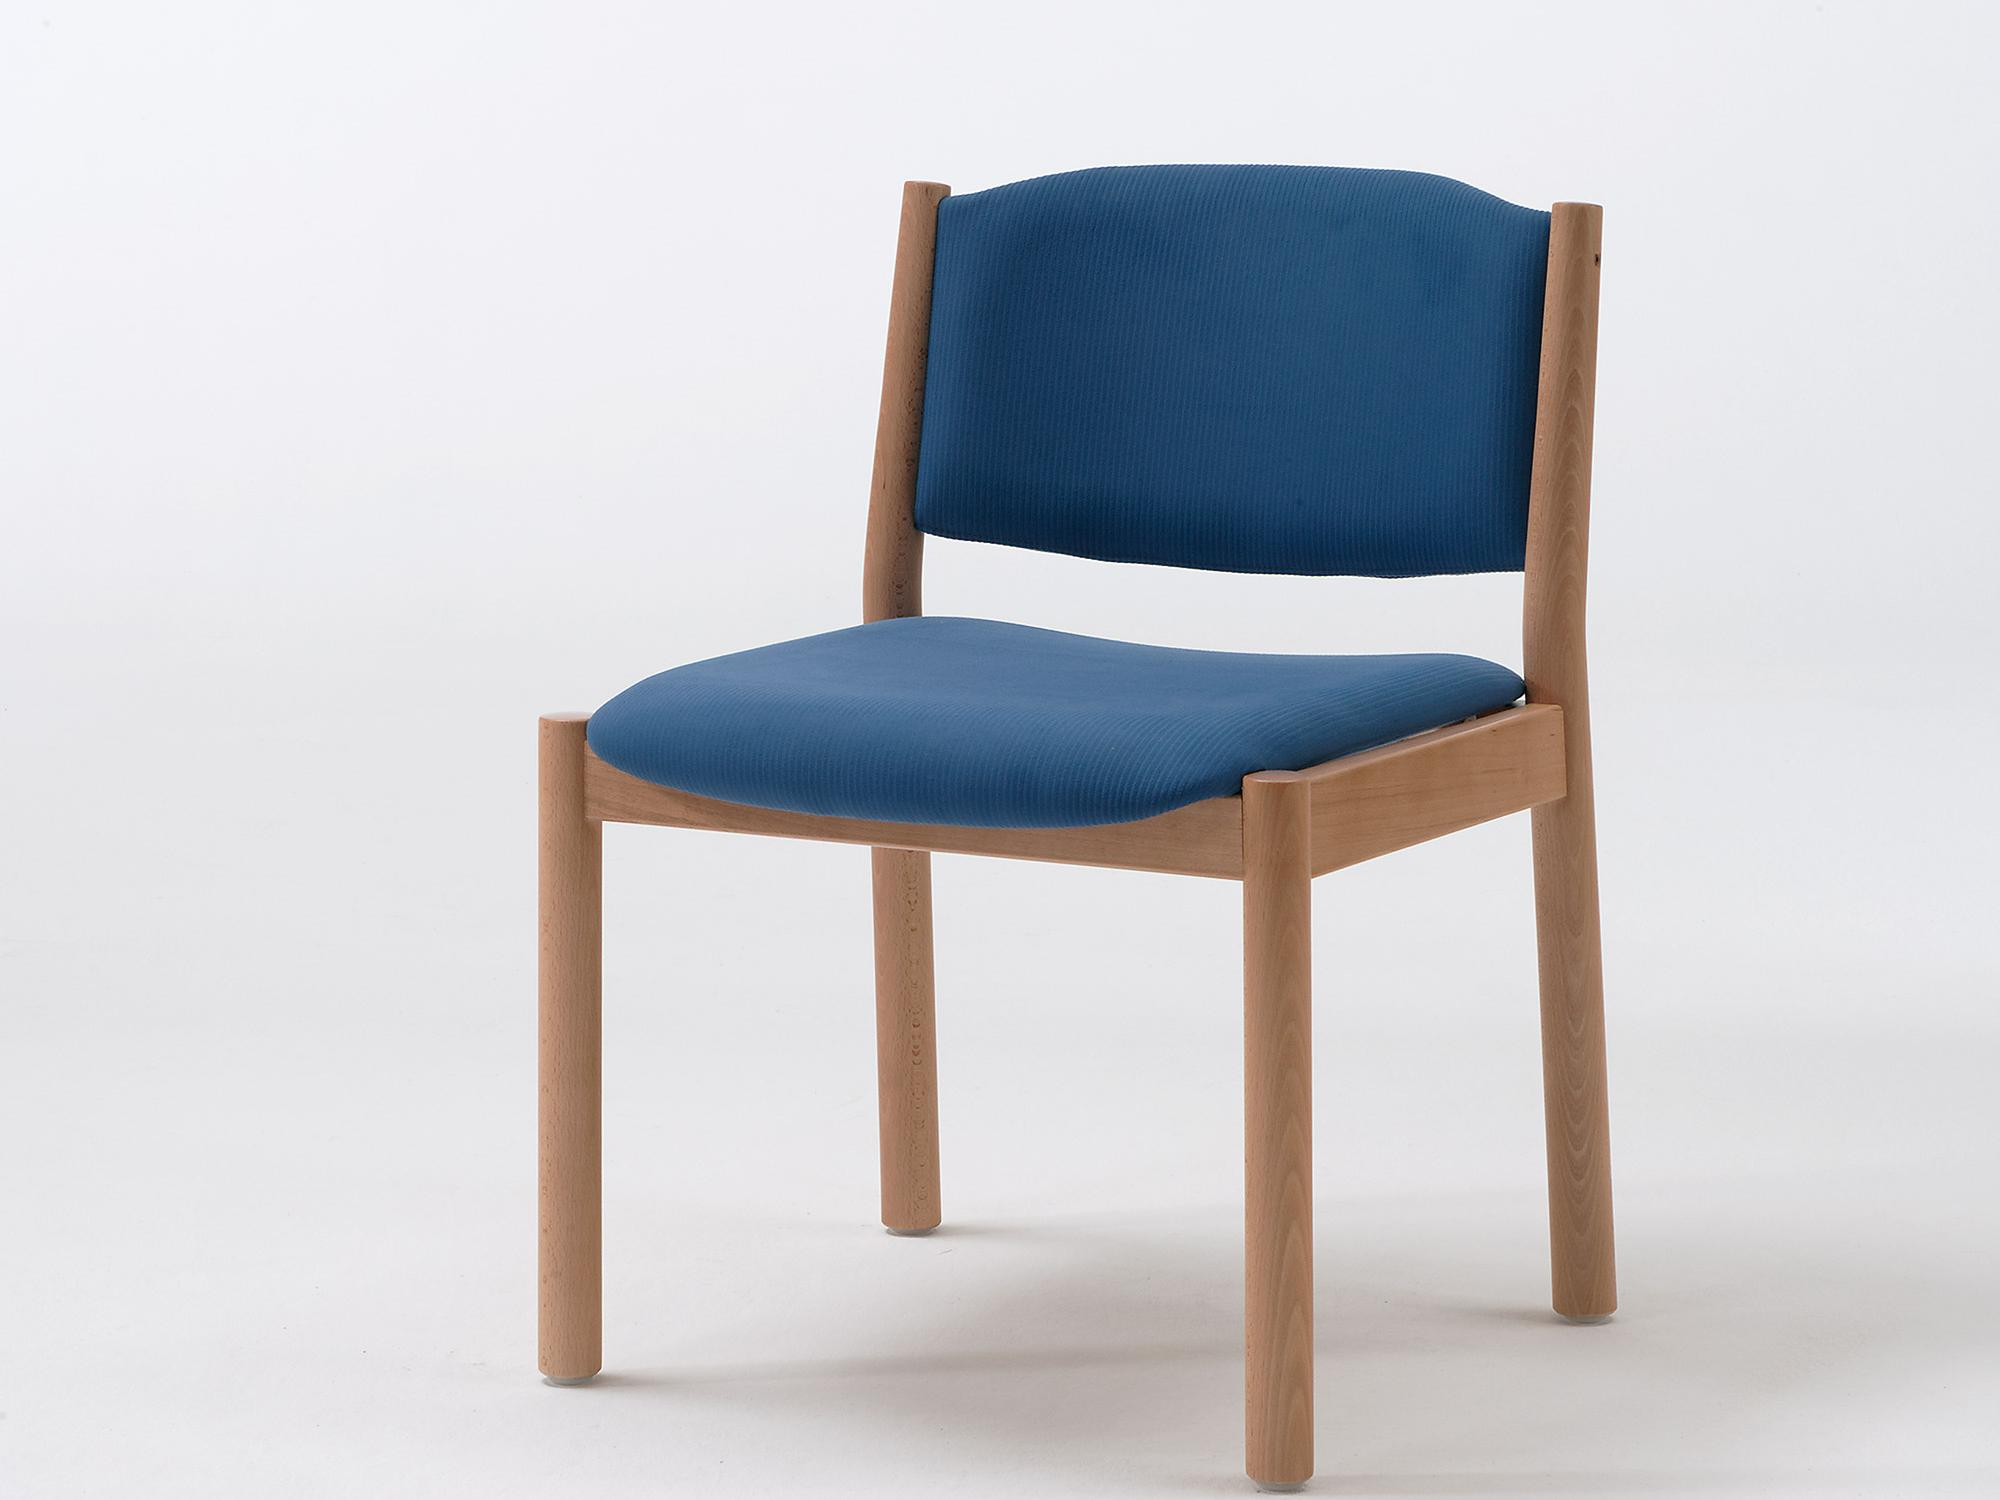 The upholstered Primo chair